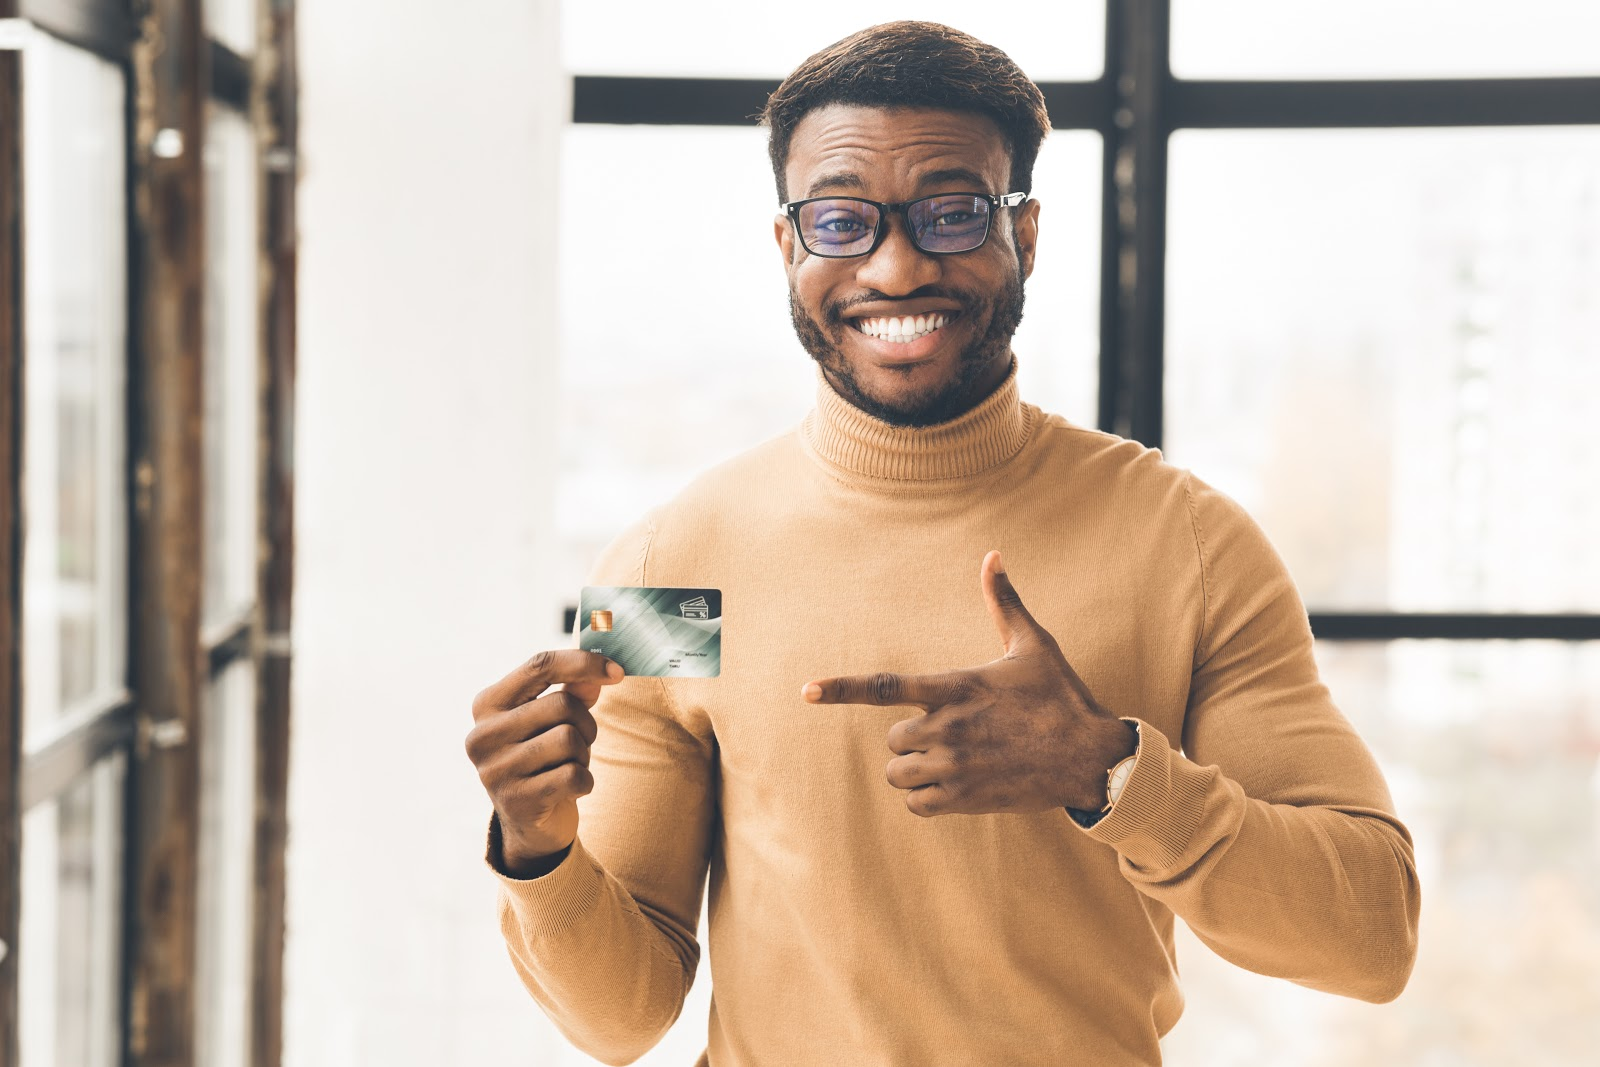 A man smiles and points at his credit card